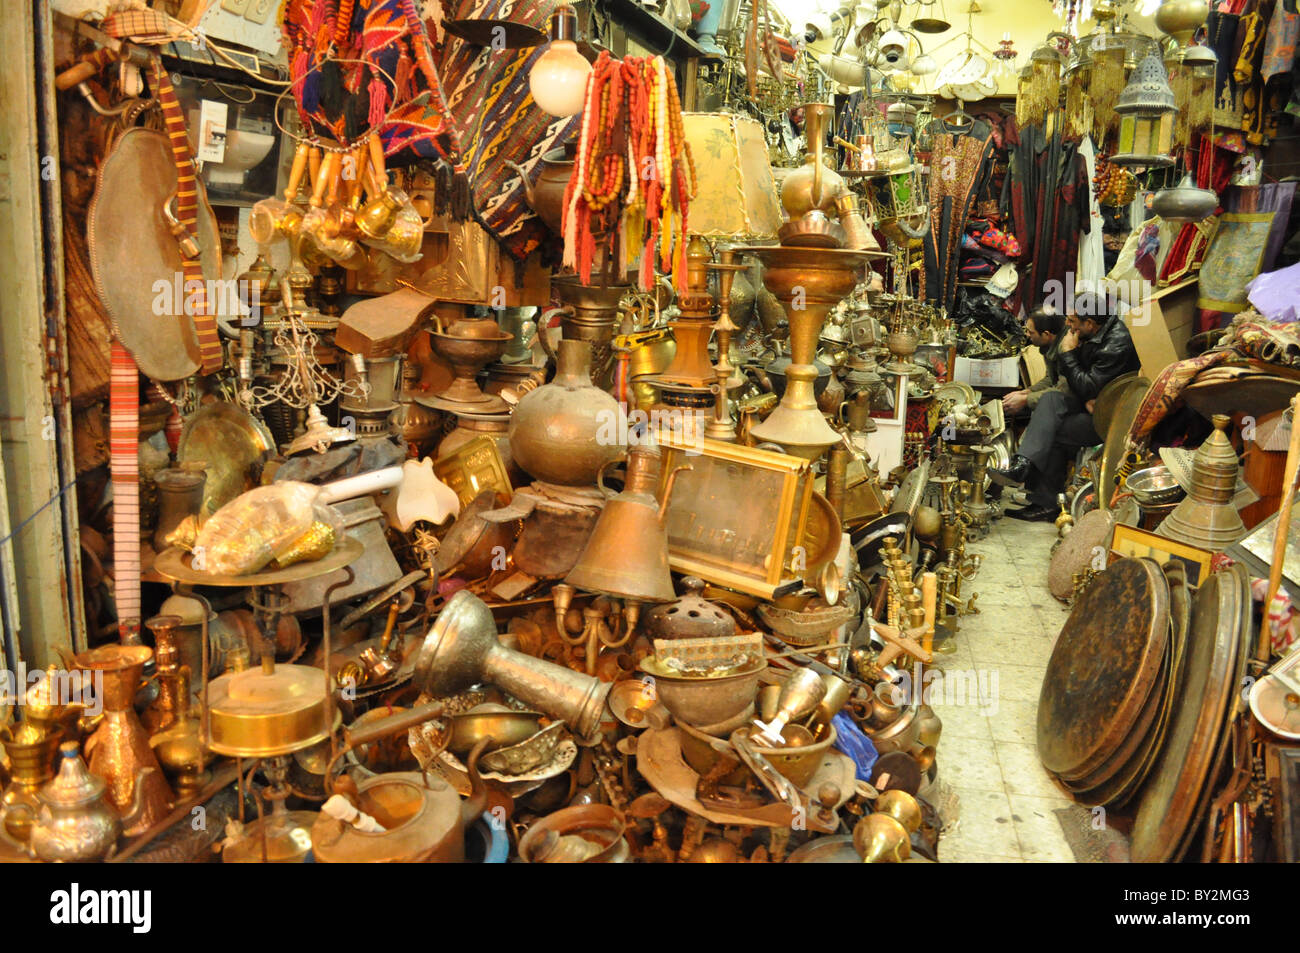 second-hand dealer, junkman in Jerusalem arab souk - Stock Image